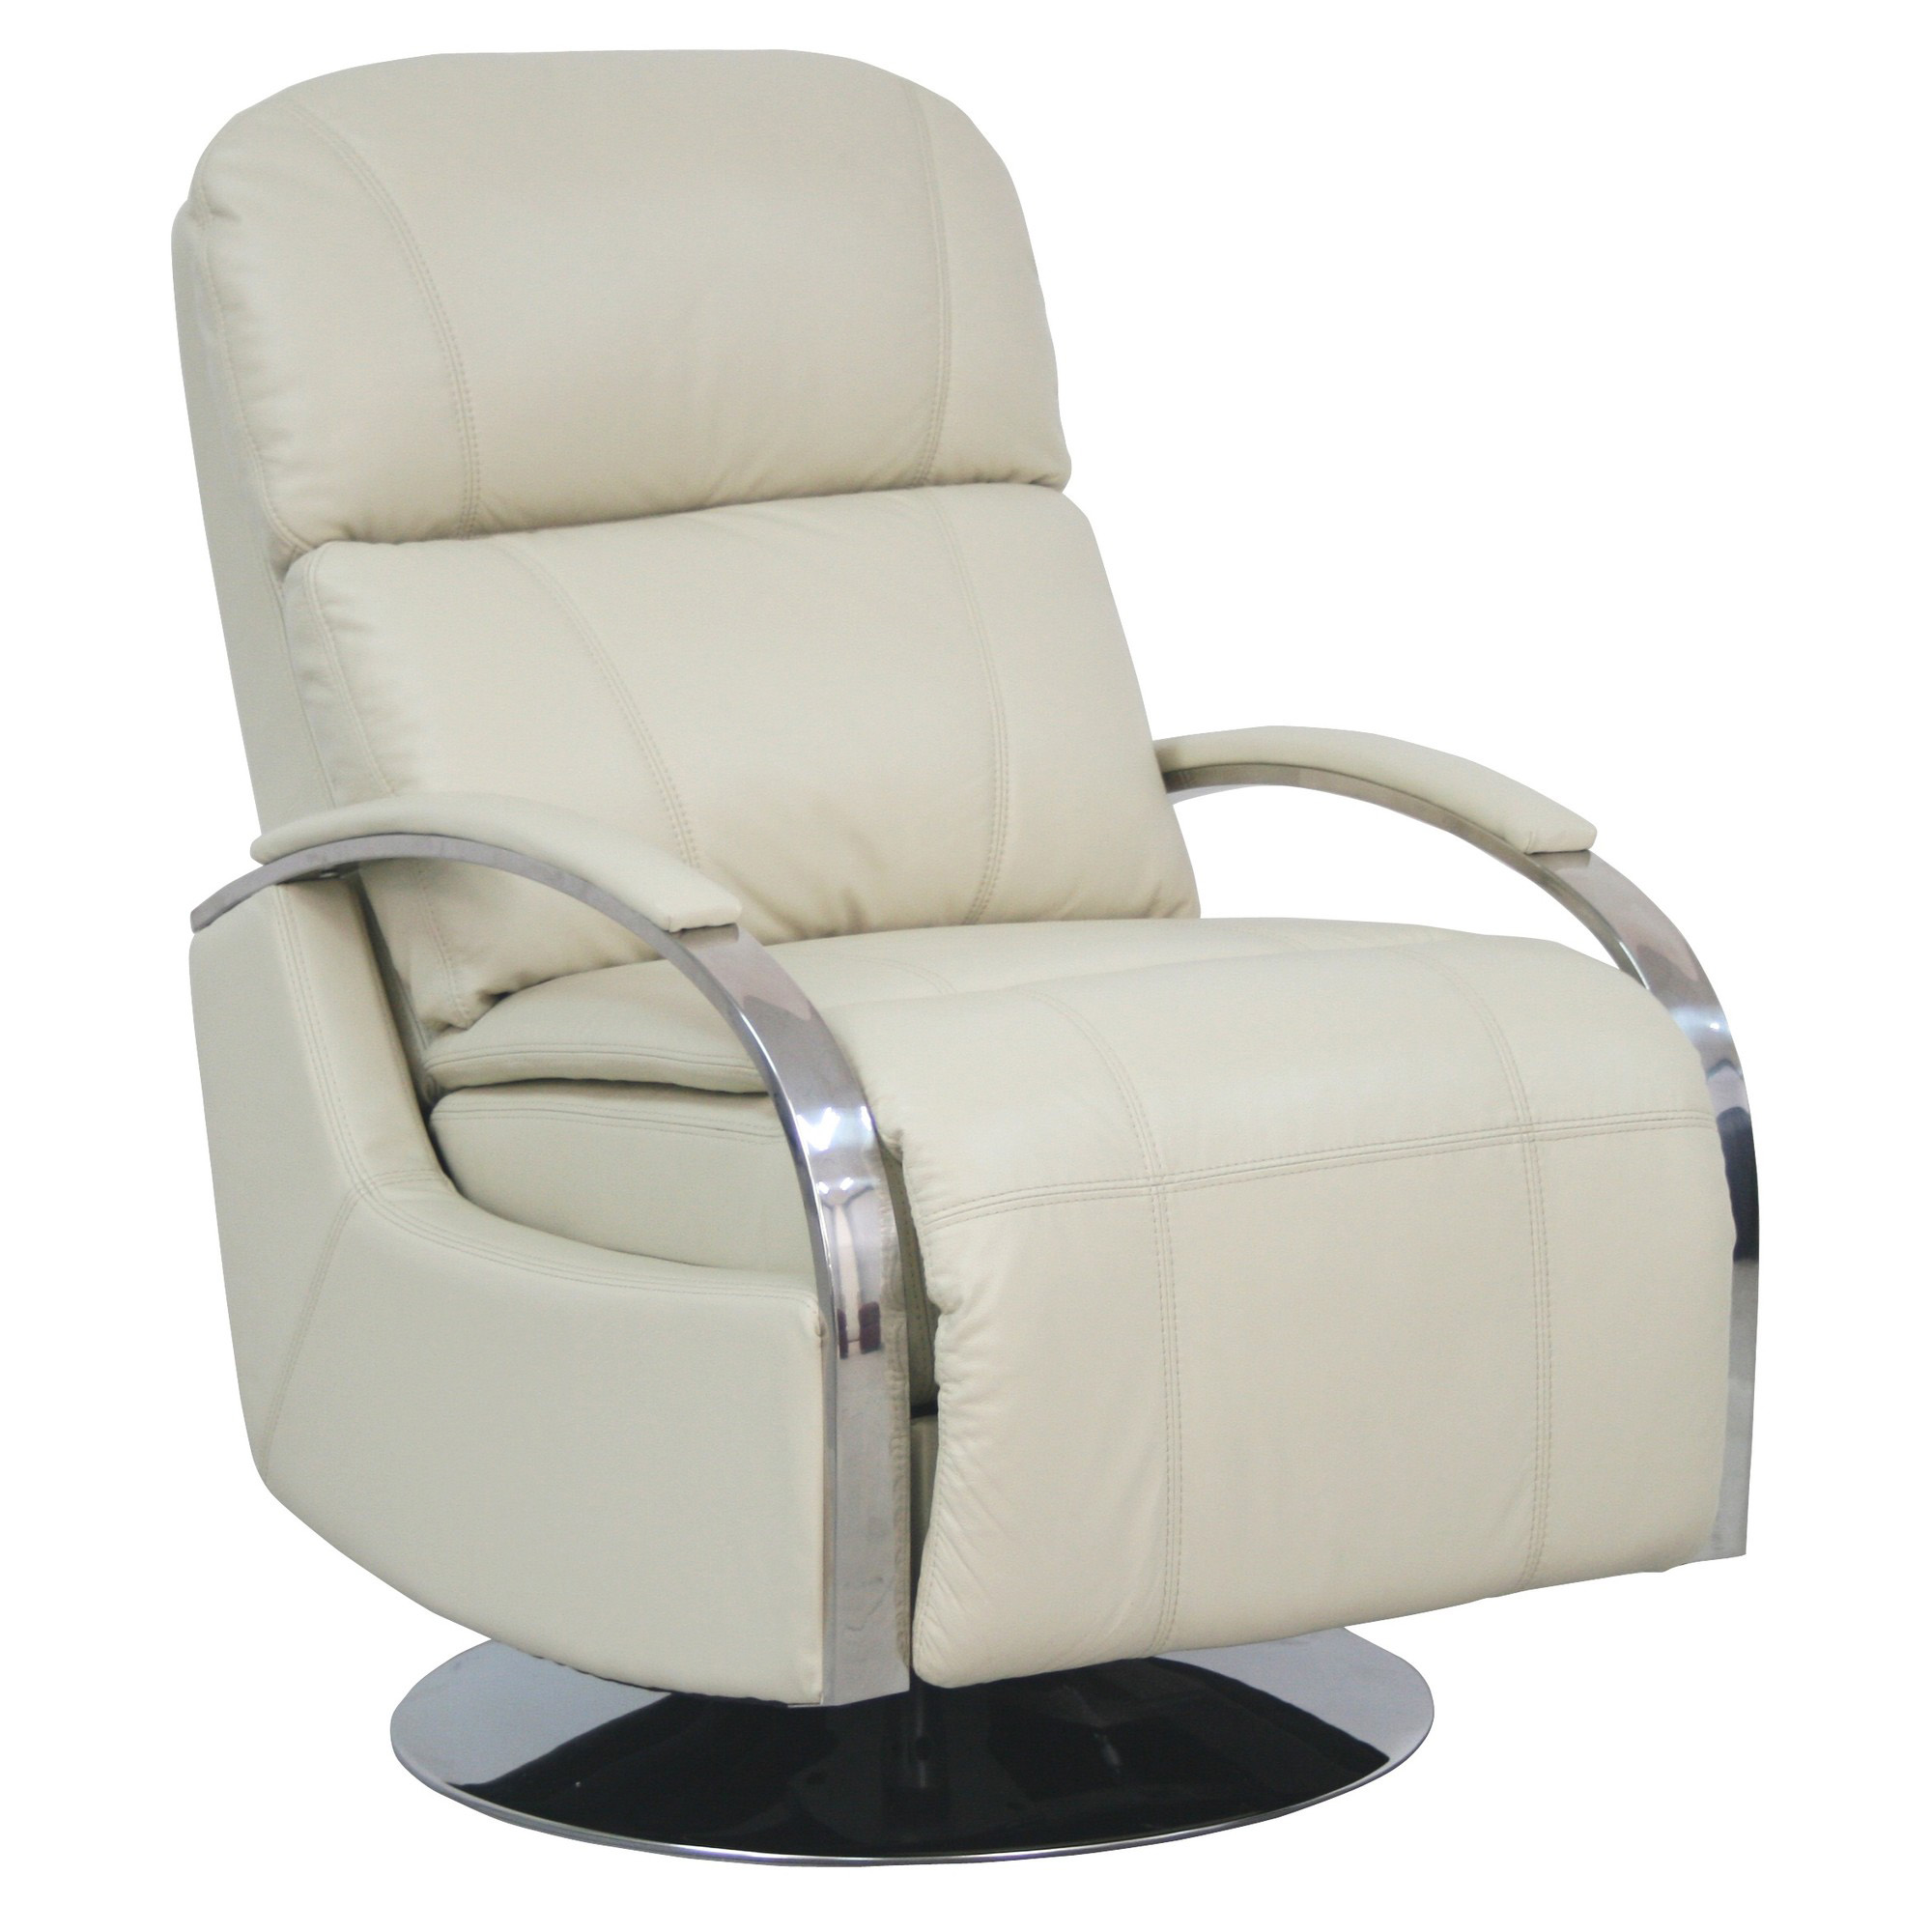 Barcalounger Regal II Leather Recliner Chair